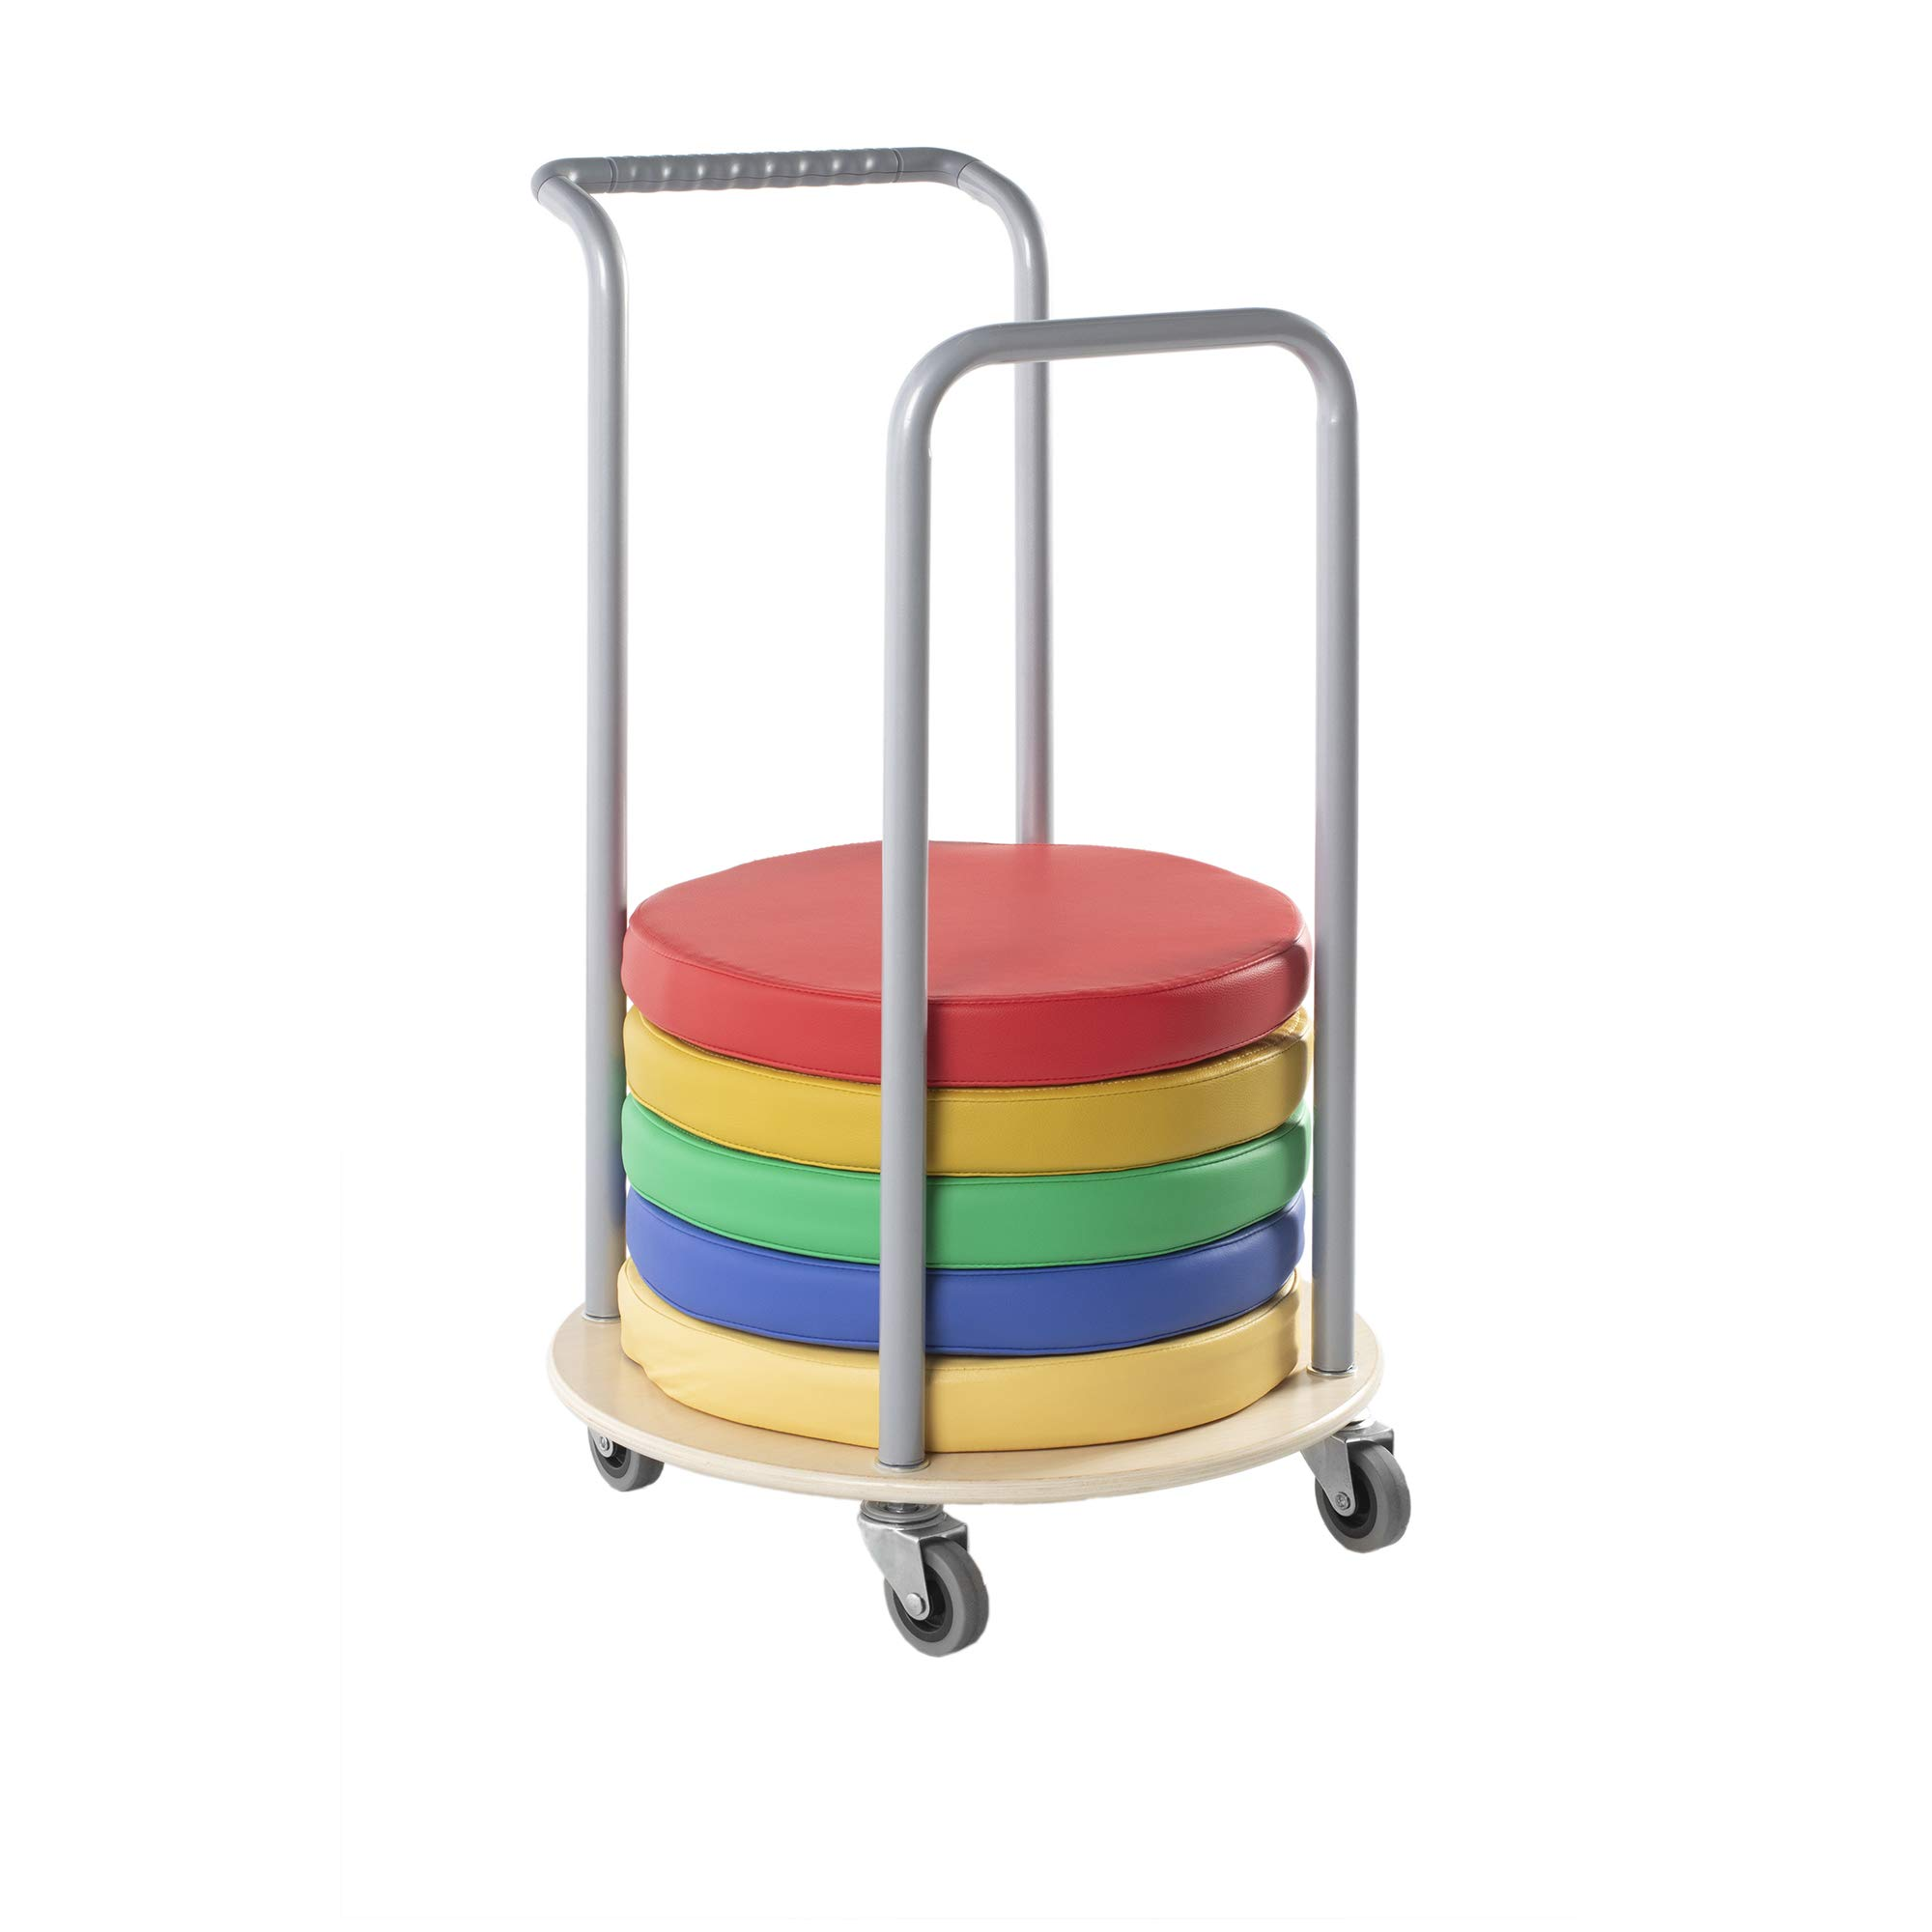 Guidecraft Storytime Cushion Storage: 12 Cushions Storage Rolling Cart for Kids Preschool, Toddlers Playschool Furniture by Guidecraft